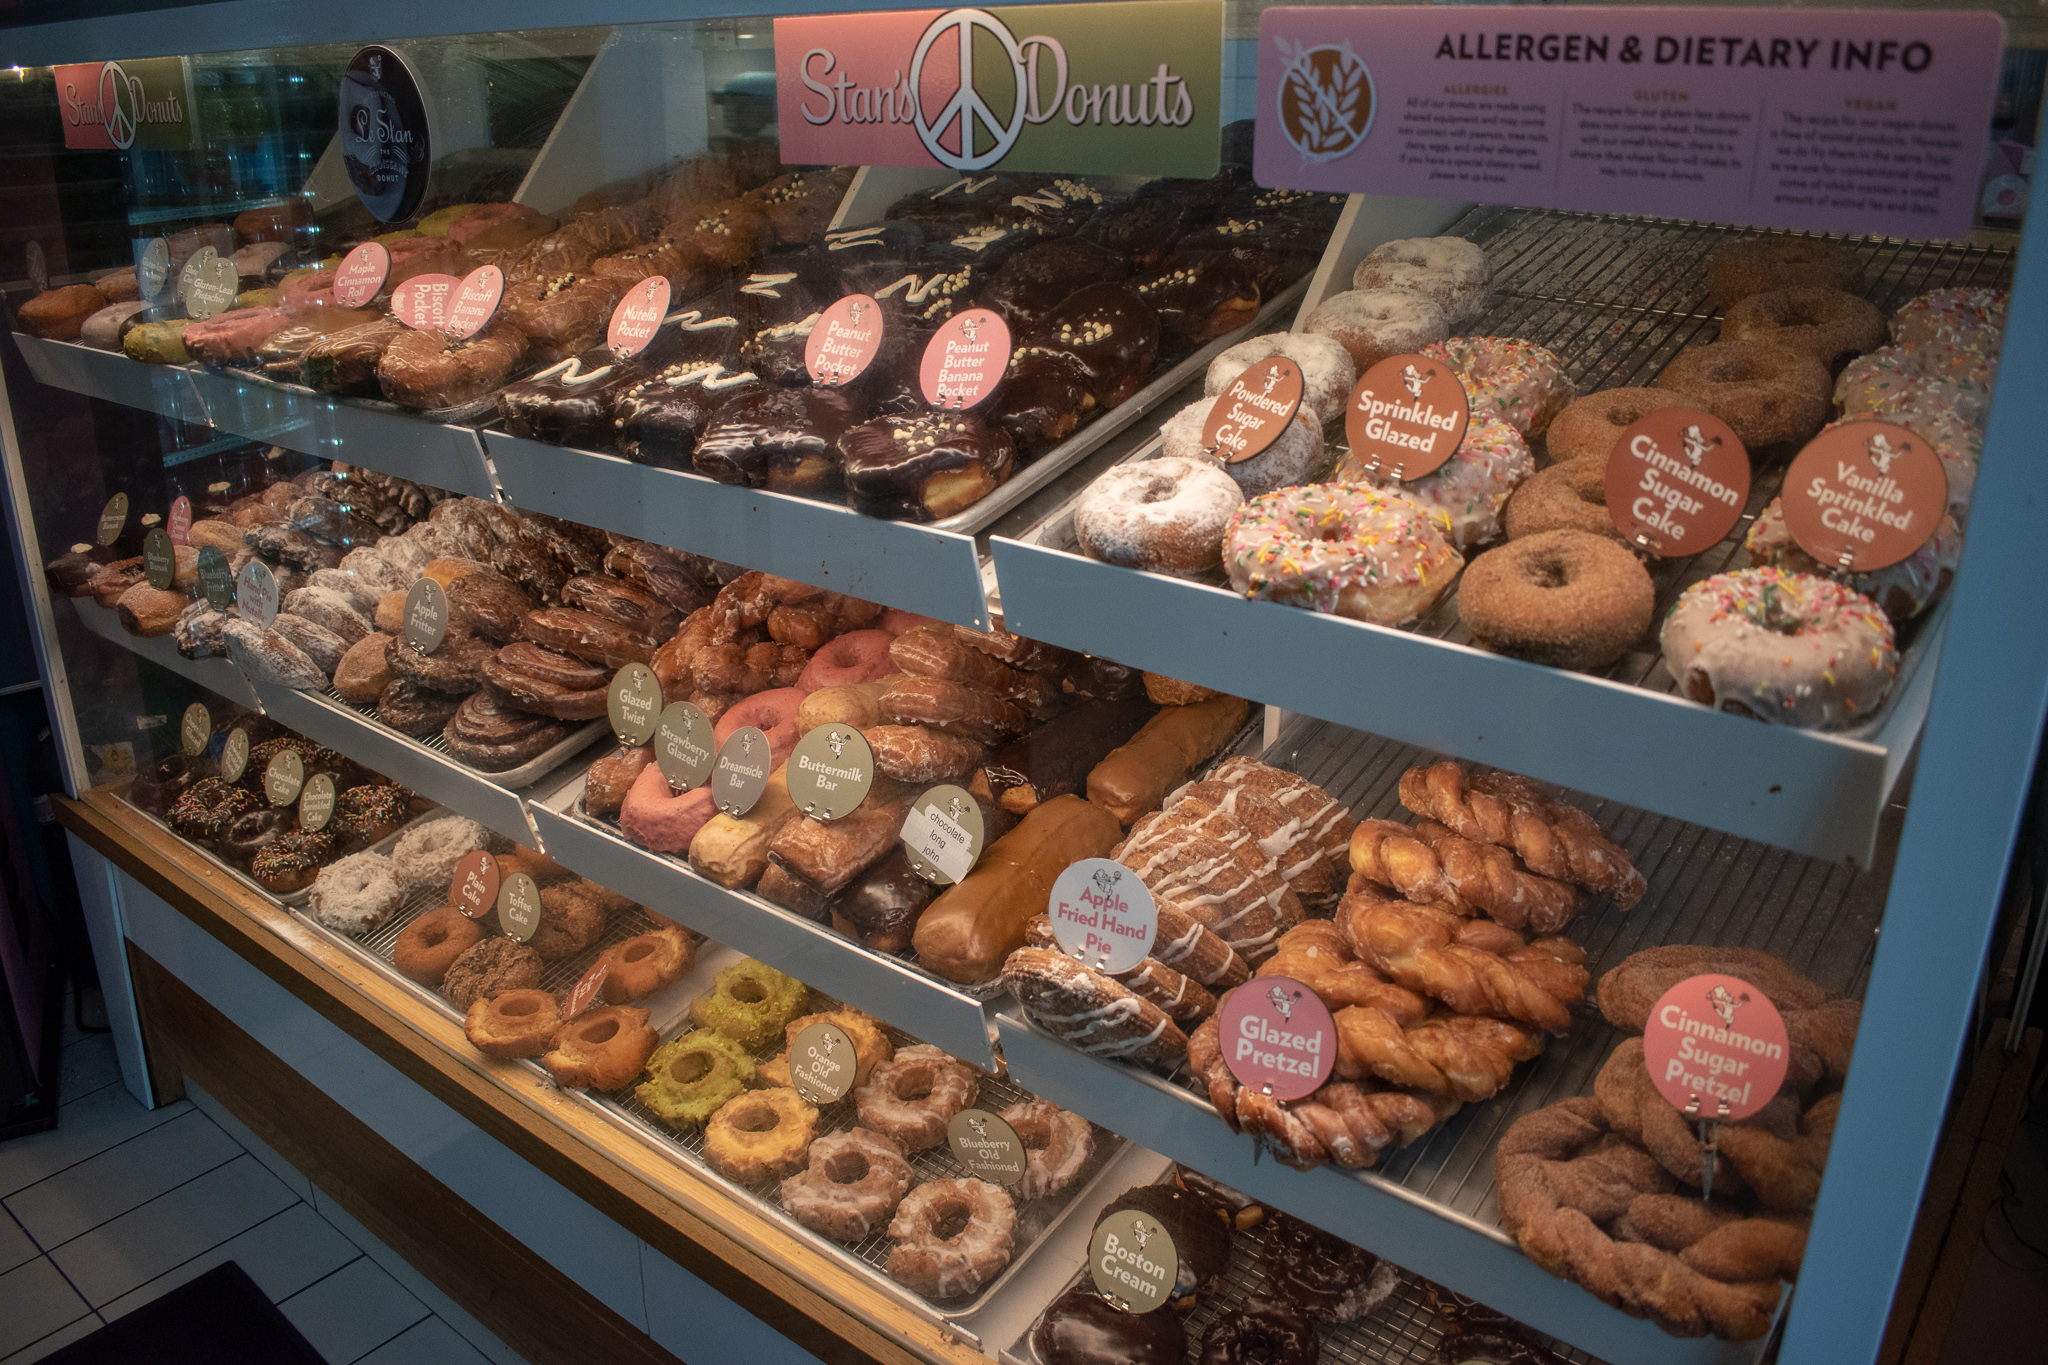 Uprooted-Traveler-Vegan-Food-Guide-Chicago-Stans-Donuts-display.jpg